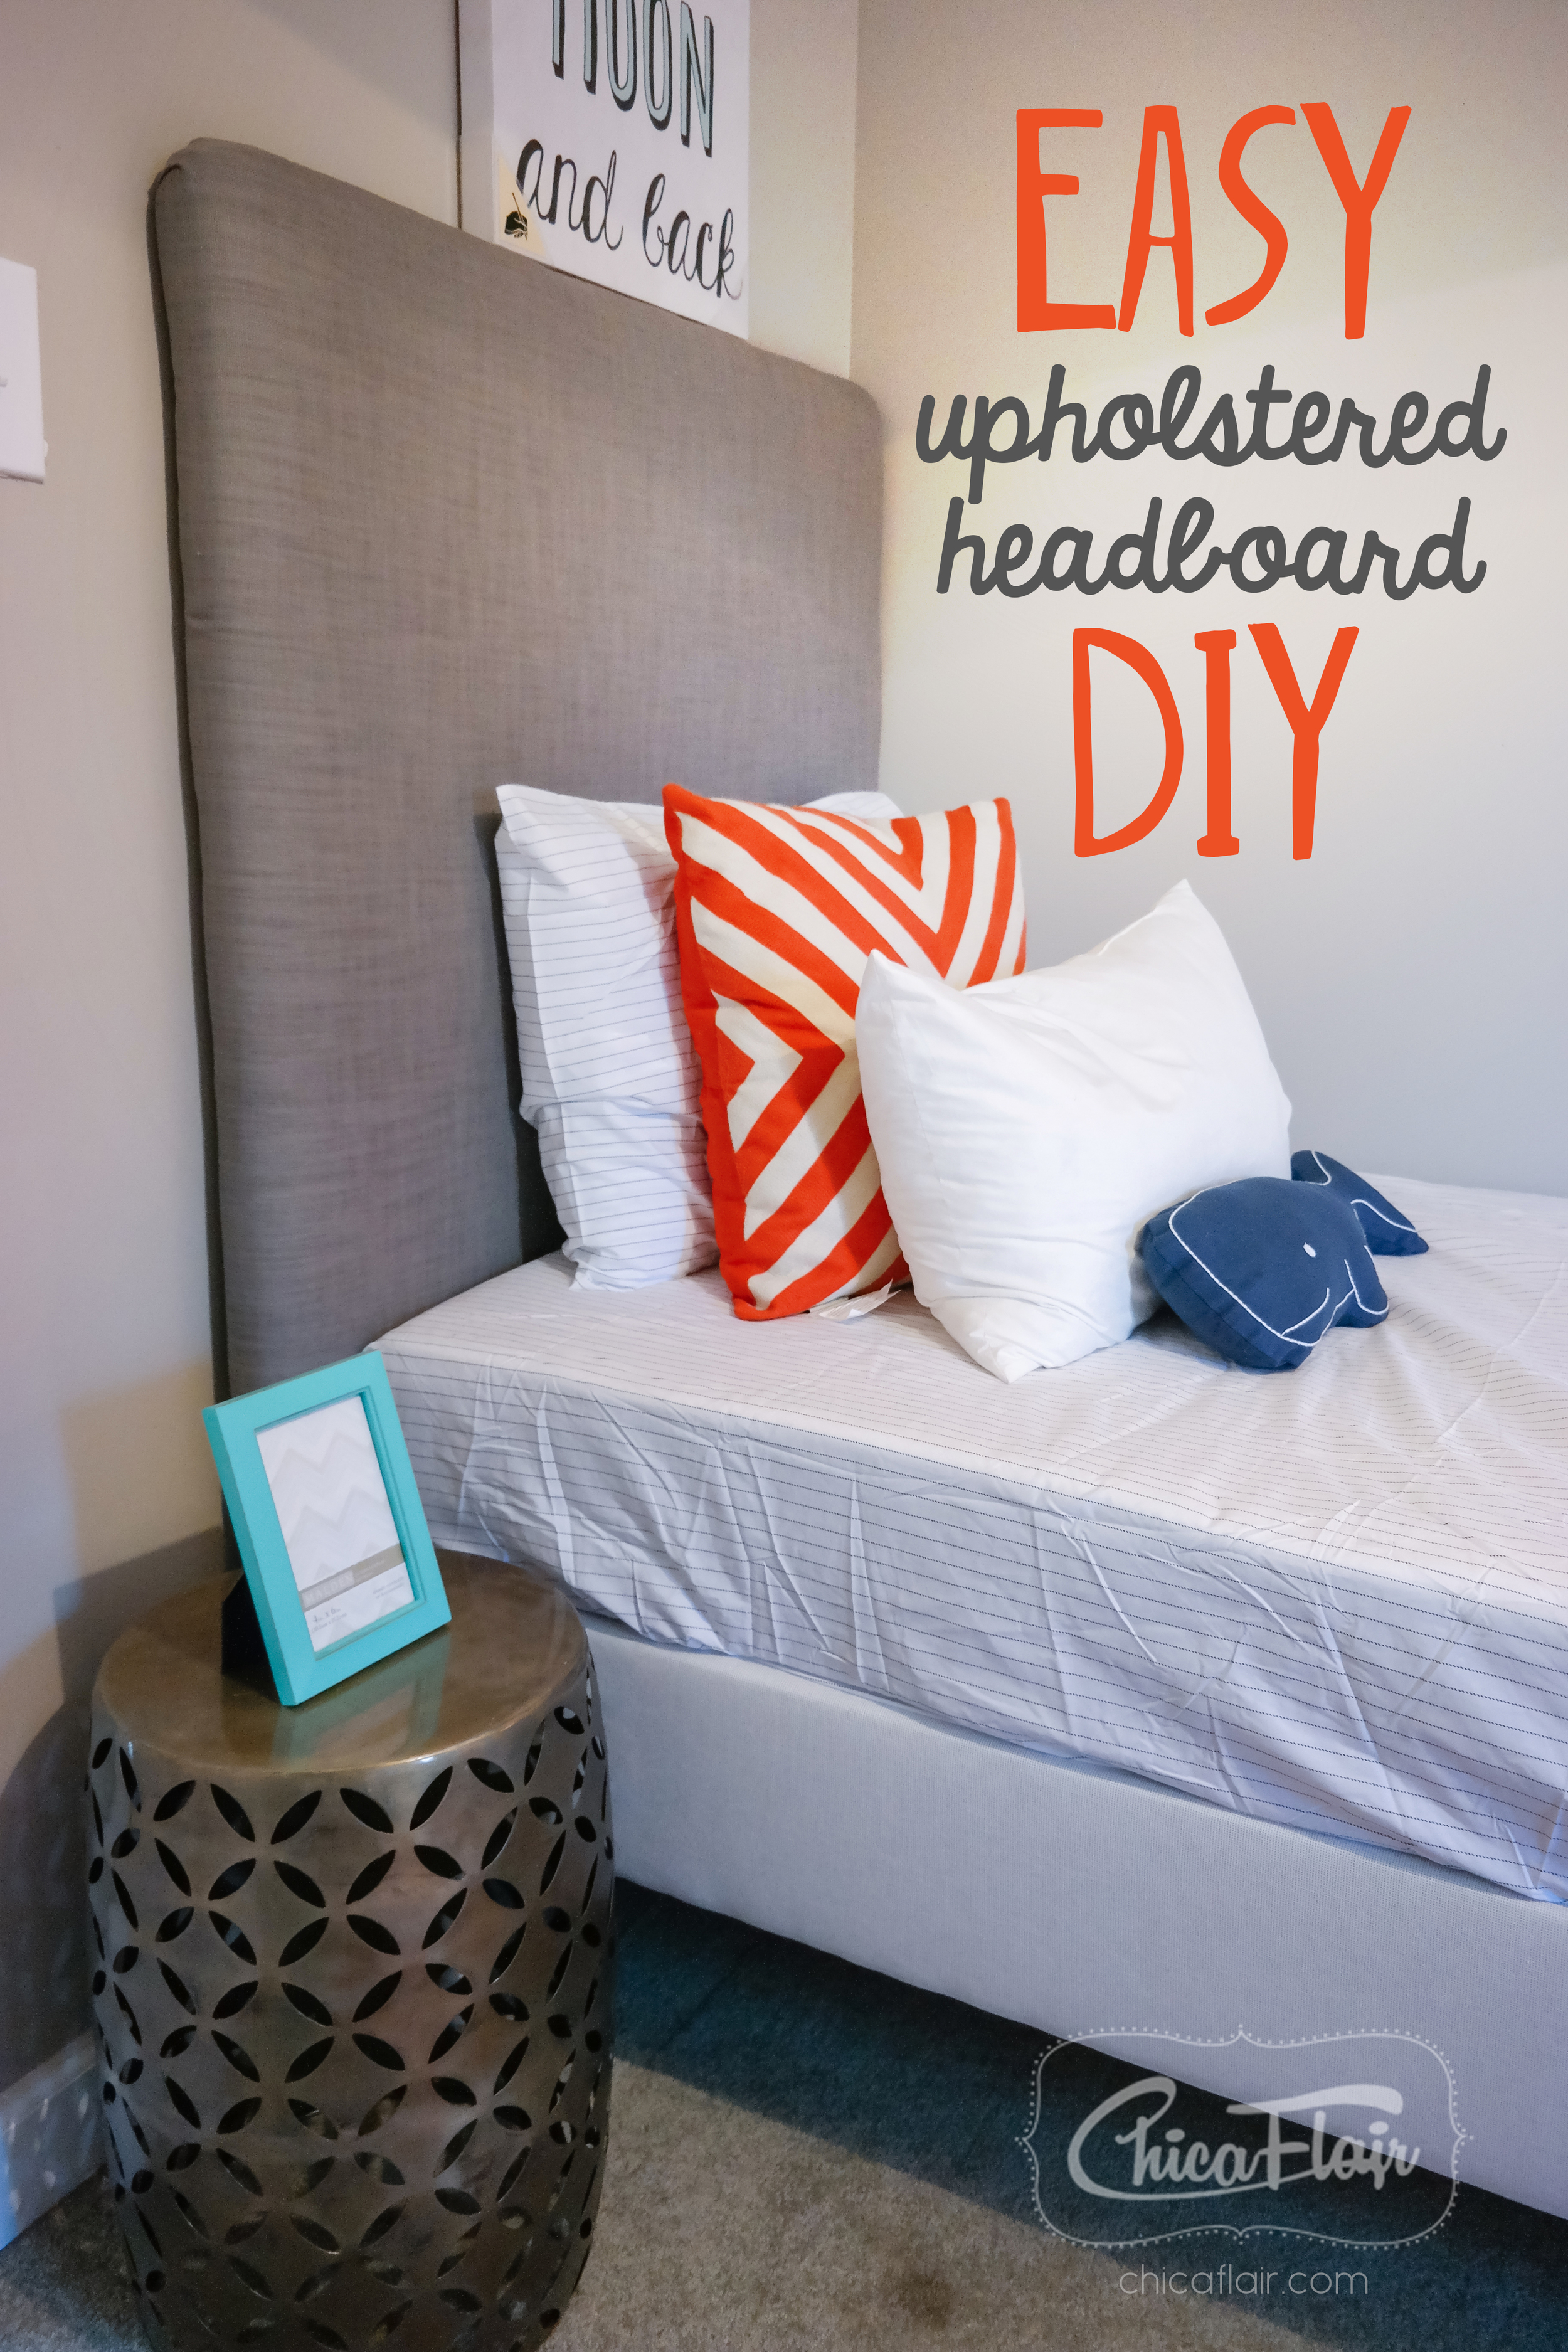 Easy Upholstered Headboard Diy Chicaflair